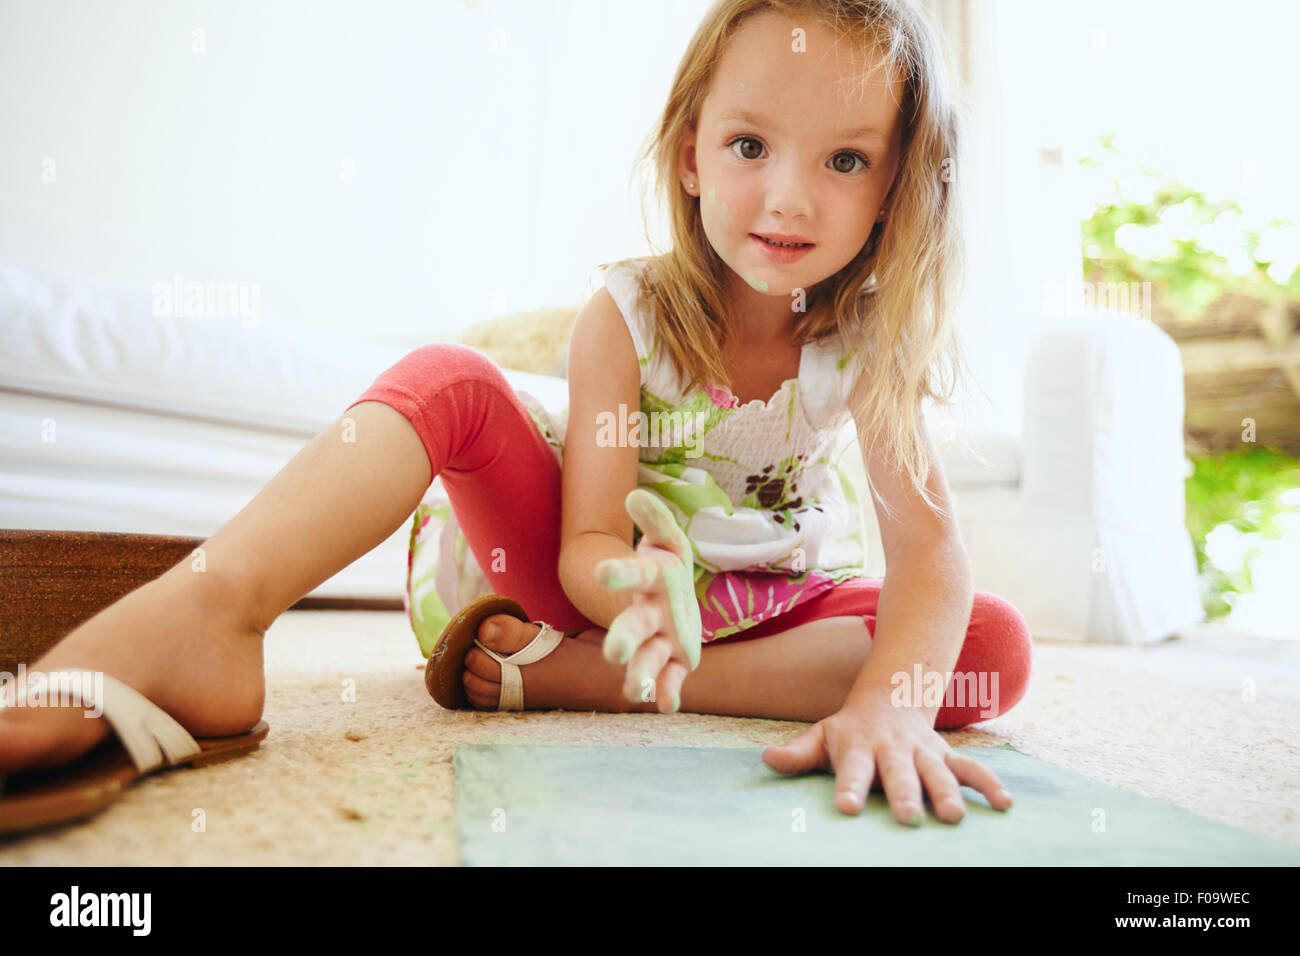 Portrait of beautiful little schoolgirl coloring a picture. Girl's hands painted with green chalk color looking - Stock Image